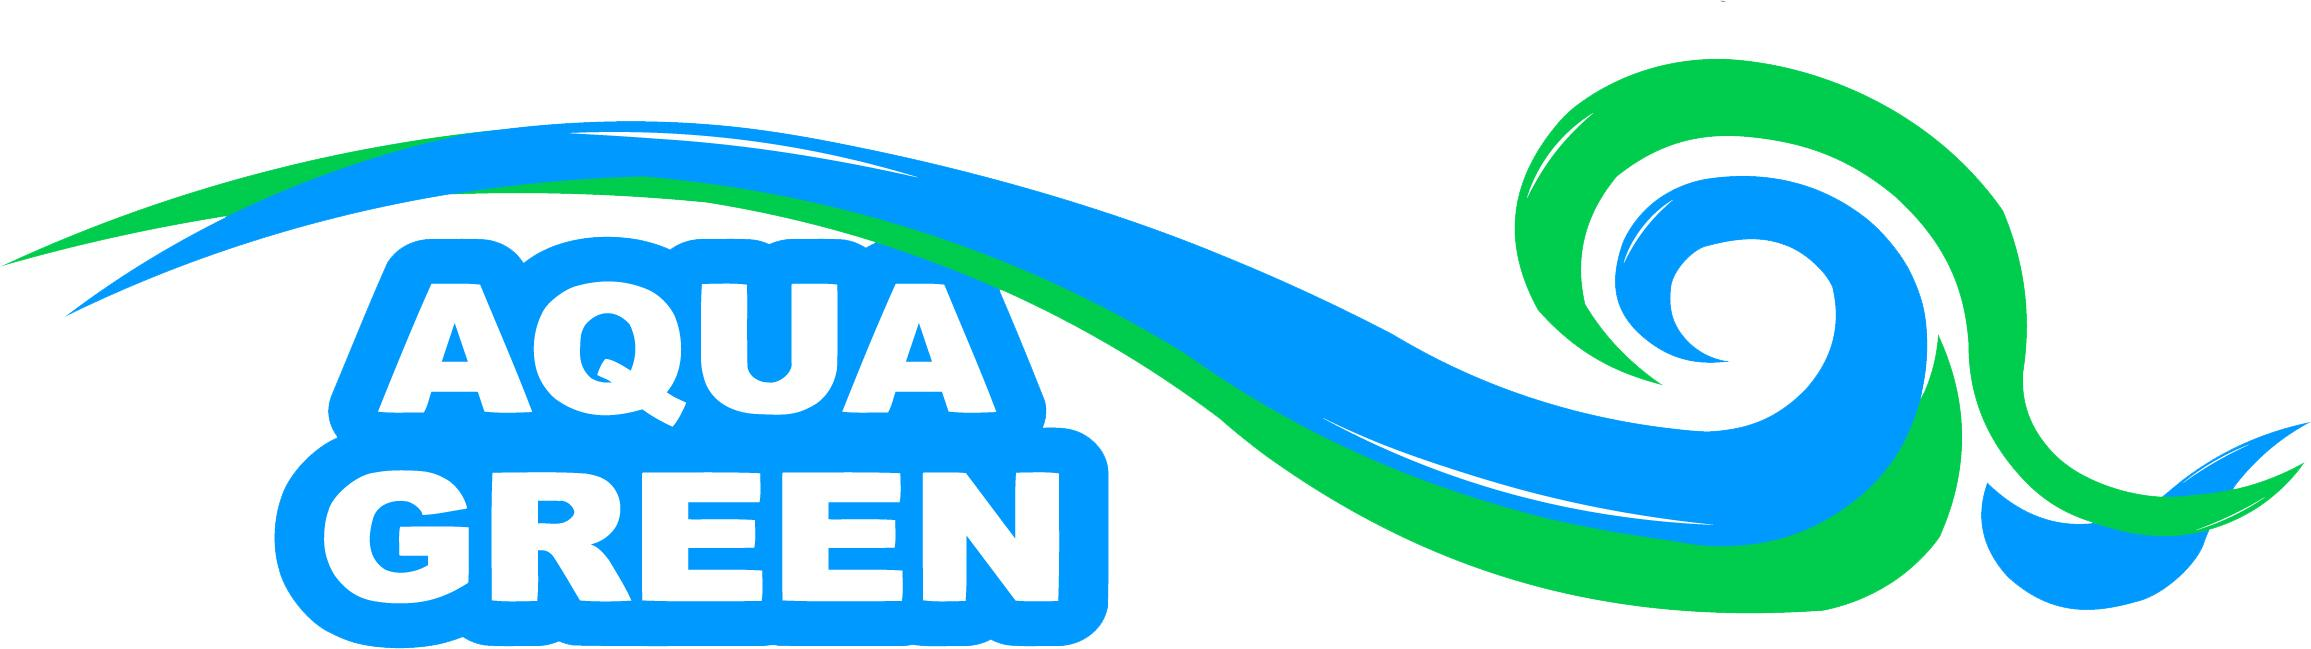 aquagreen logo_8